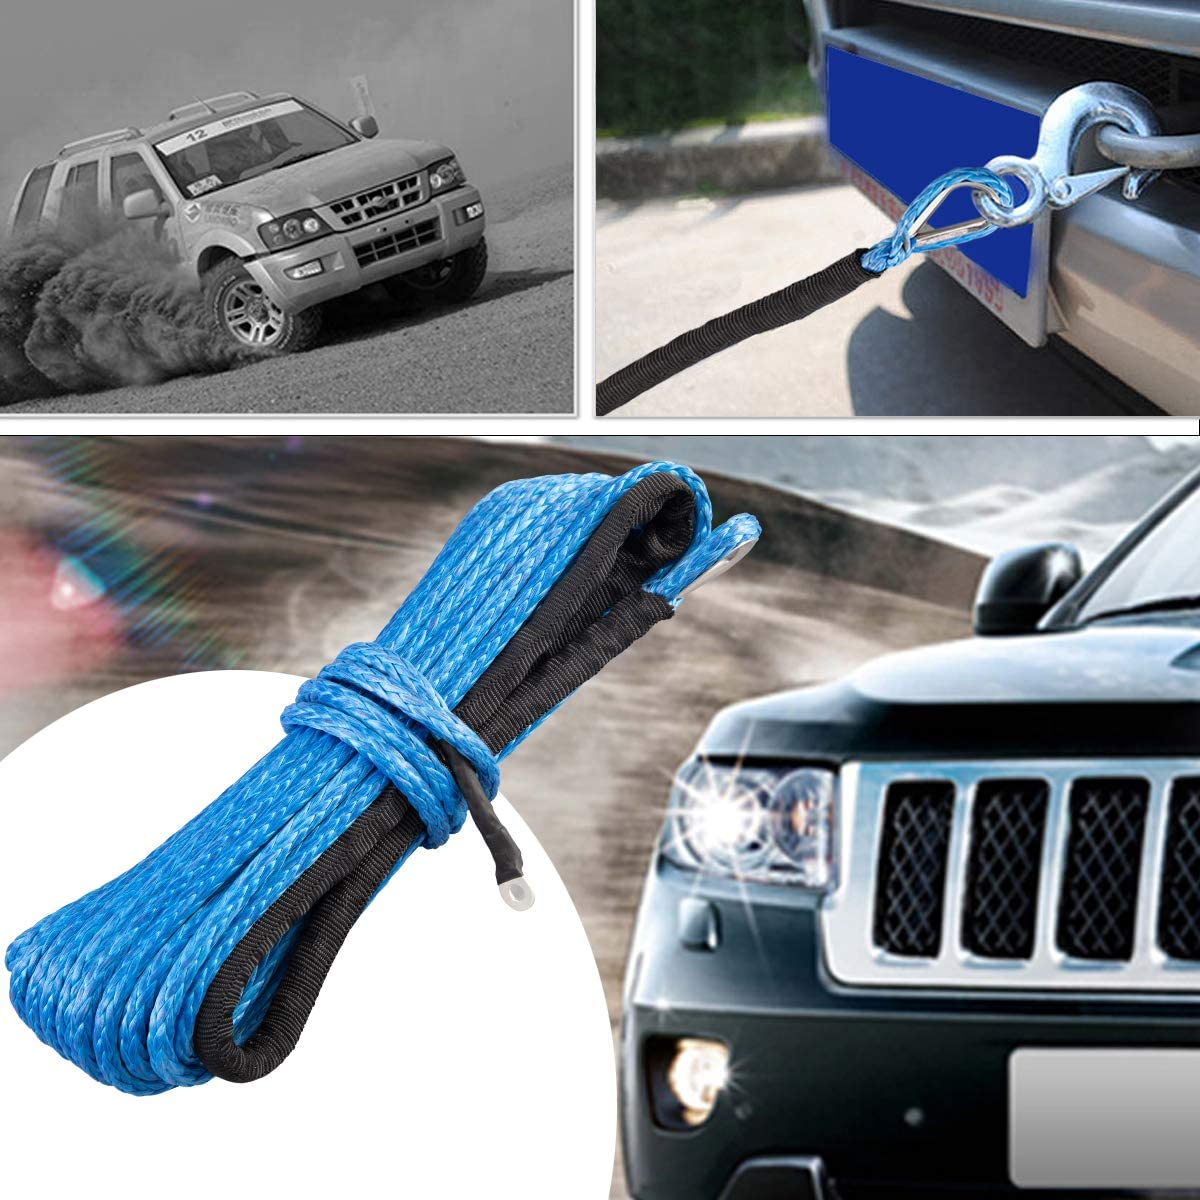 Synthetic Winch Rope 1//4 x 50 7500+Lbs Blue Winch Nylon Line with Black Protecting Sleeve Synthetic Nylon Winch Rope for ATV UTV SUV Jeep Truck Boat